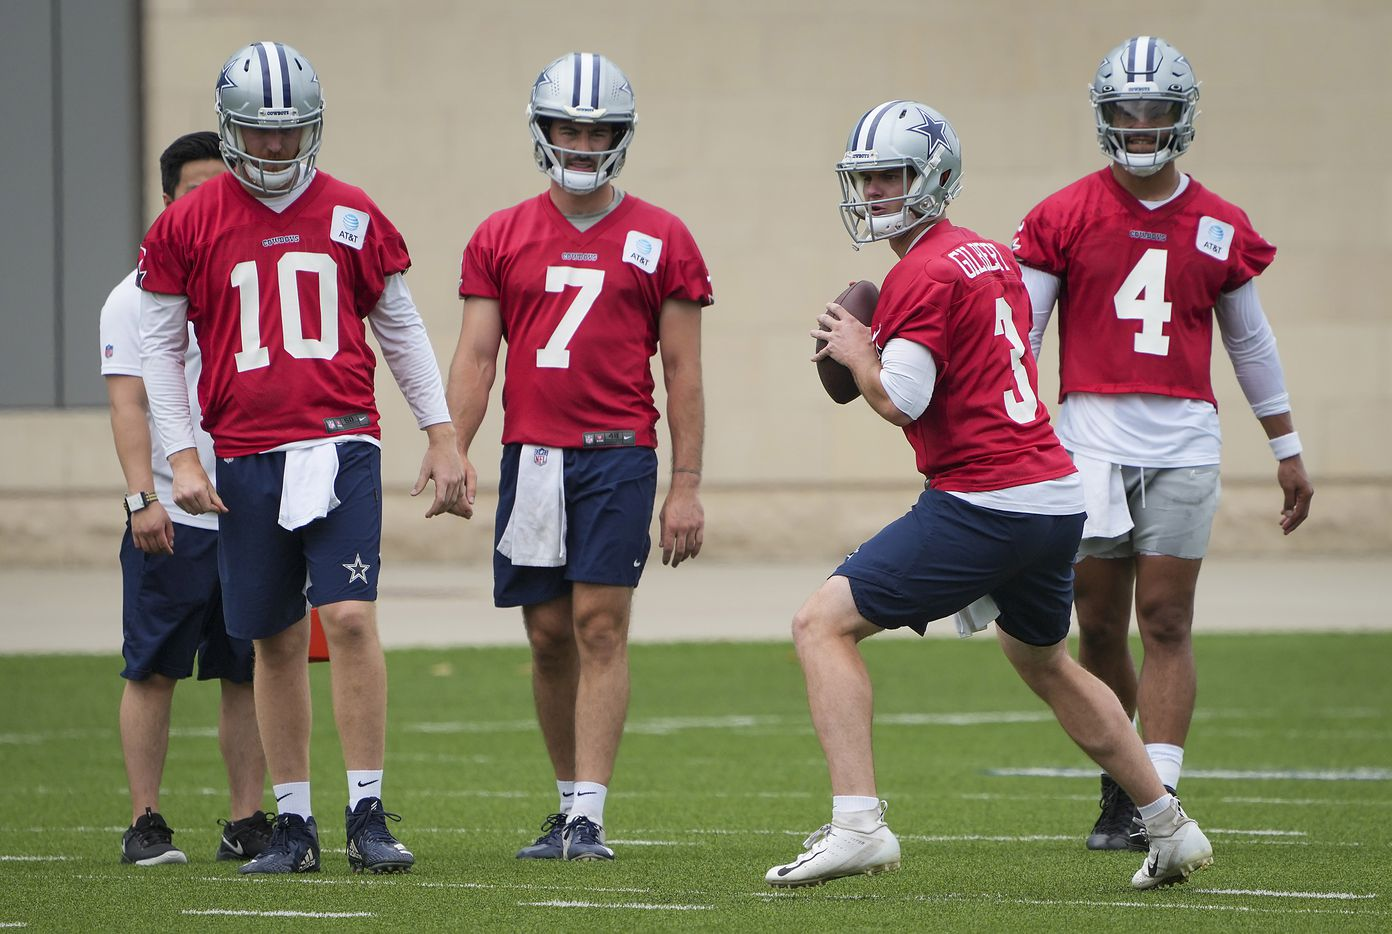 Dallas Cowboys quarterbacks Cooper Rush (10), Ben DiNucci (7), Garrett Gilbert (3) and Dak Prescott (4) participate in a drill during a minicamp practice at The Star on Wednesday, June 9, 2021, in Frisco. (Smiley N. Pool/The Dallas Morning News)